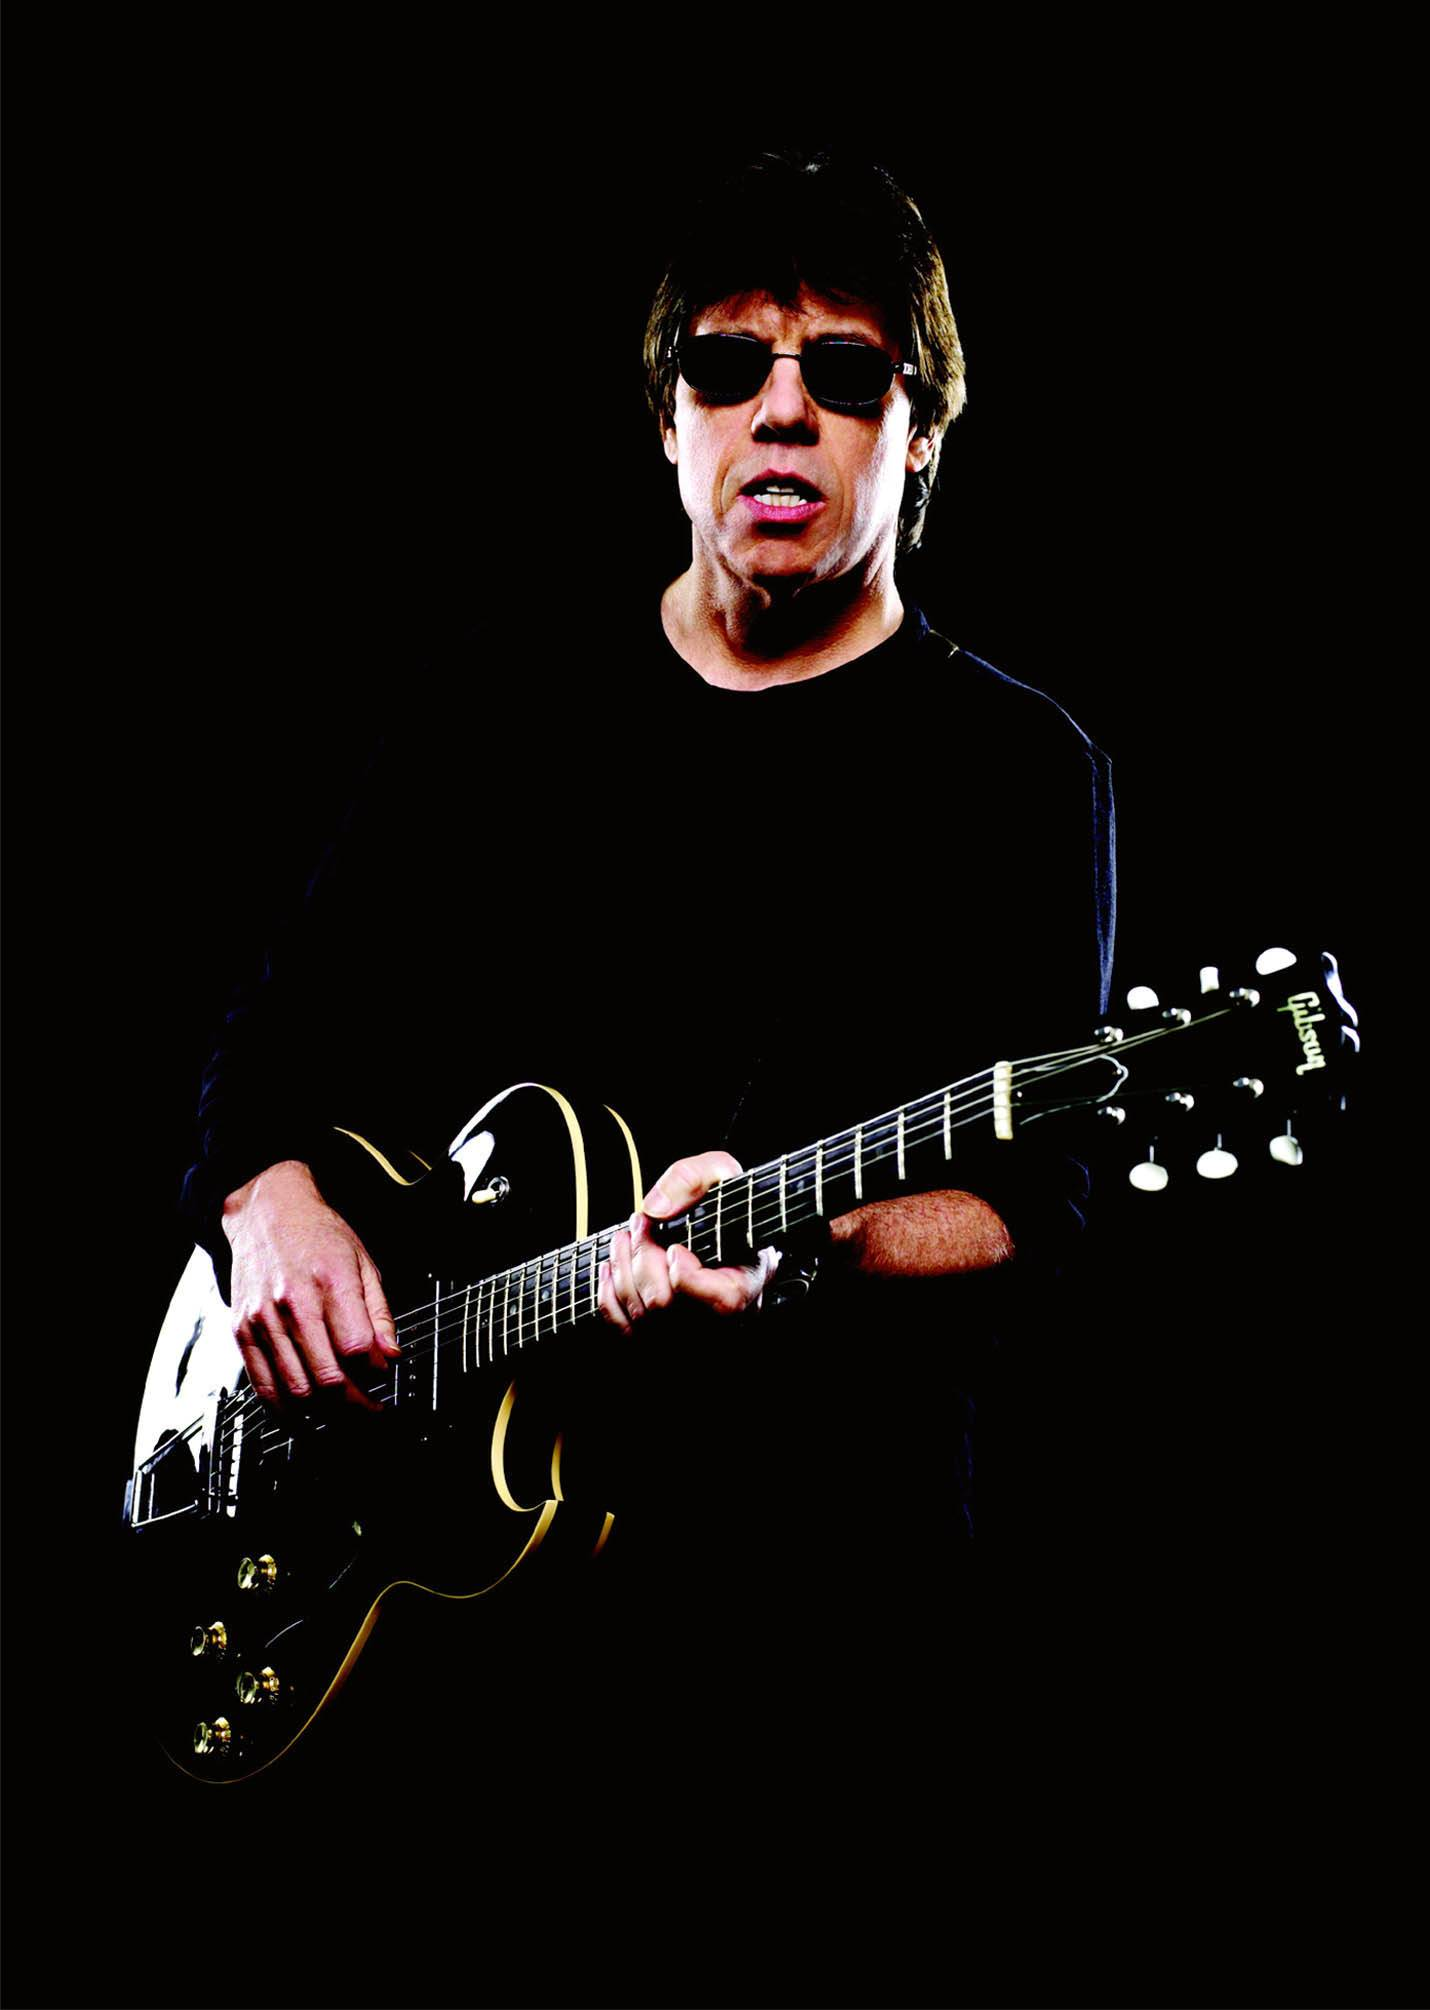 George Thorogood and The Destroyers will play the Ribfest Main Stage at 8:30 p.m. Sunday. The concert comes with $15 festival admission.